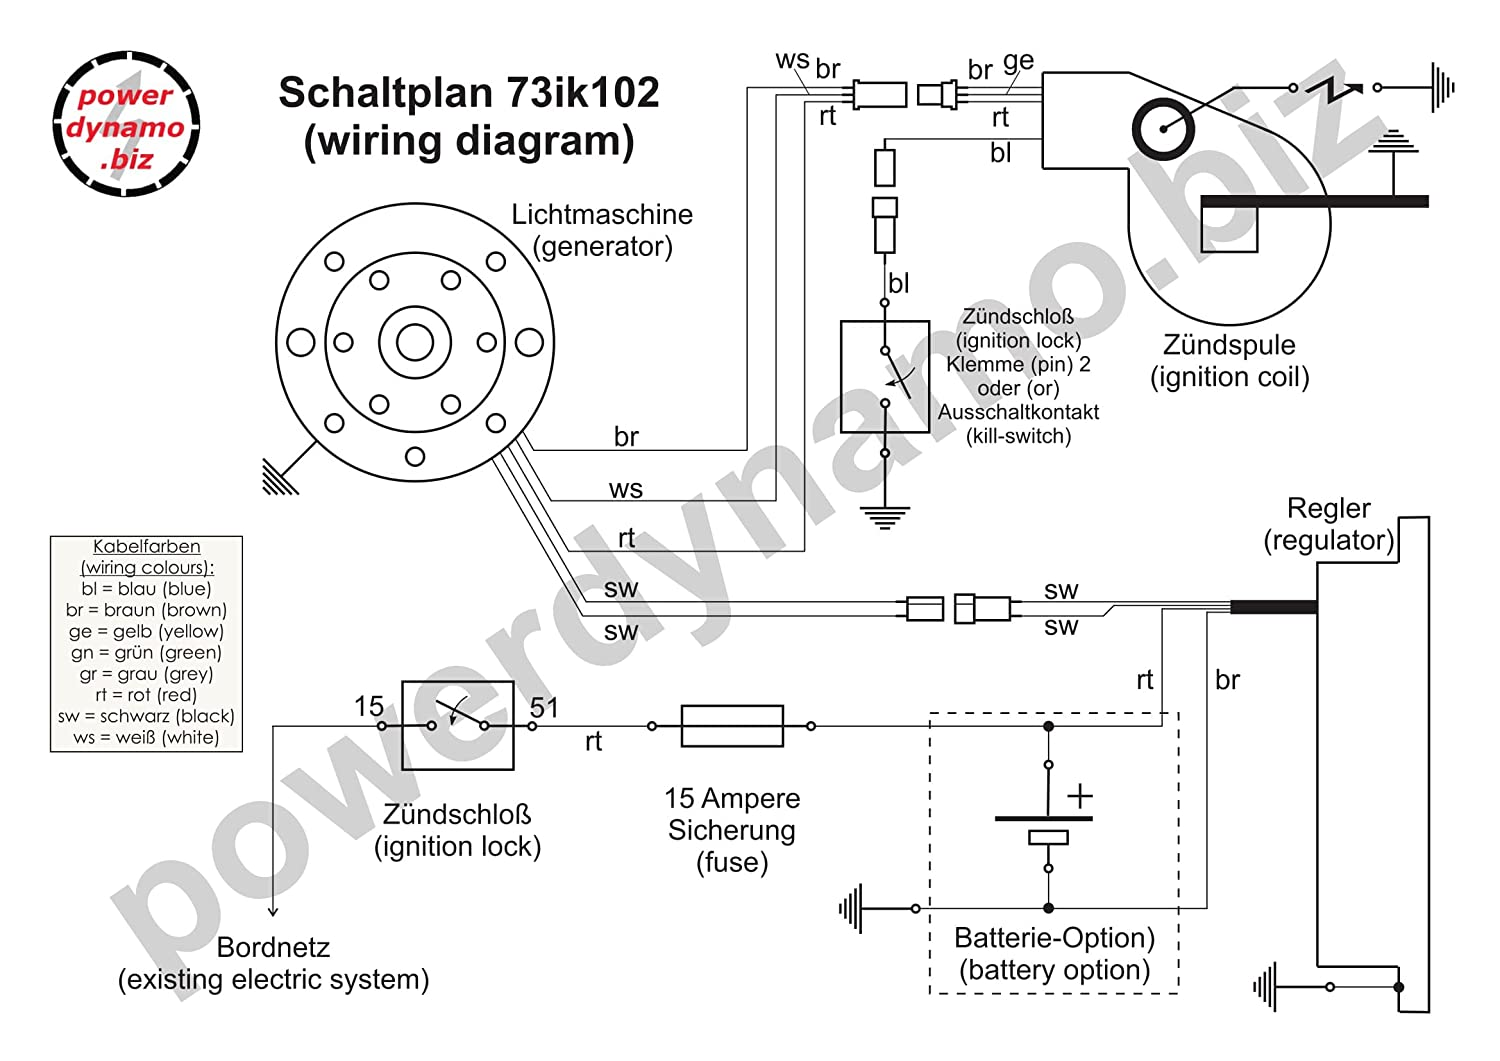 Kawasaki F11 Wiring Diagram Blog 220 4 Wheeler Electrical Diagrams Amazon Com Powerdynamo Ignition System Stator F5 F7 F8